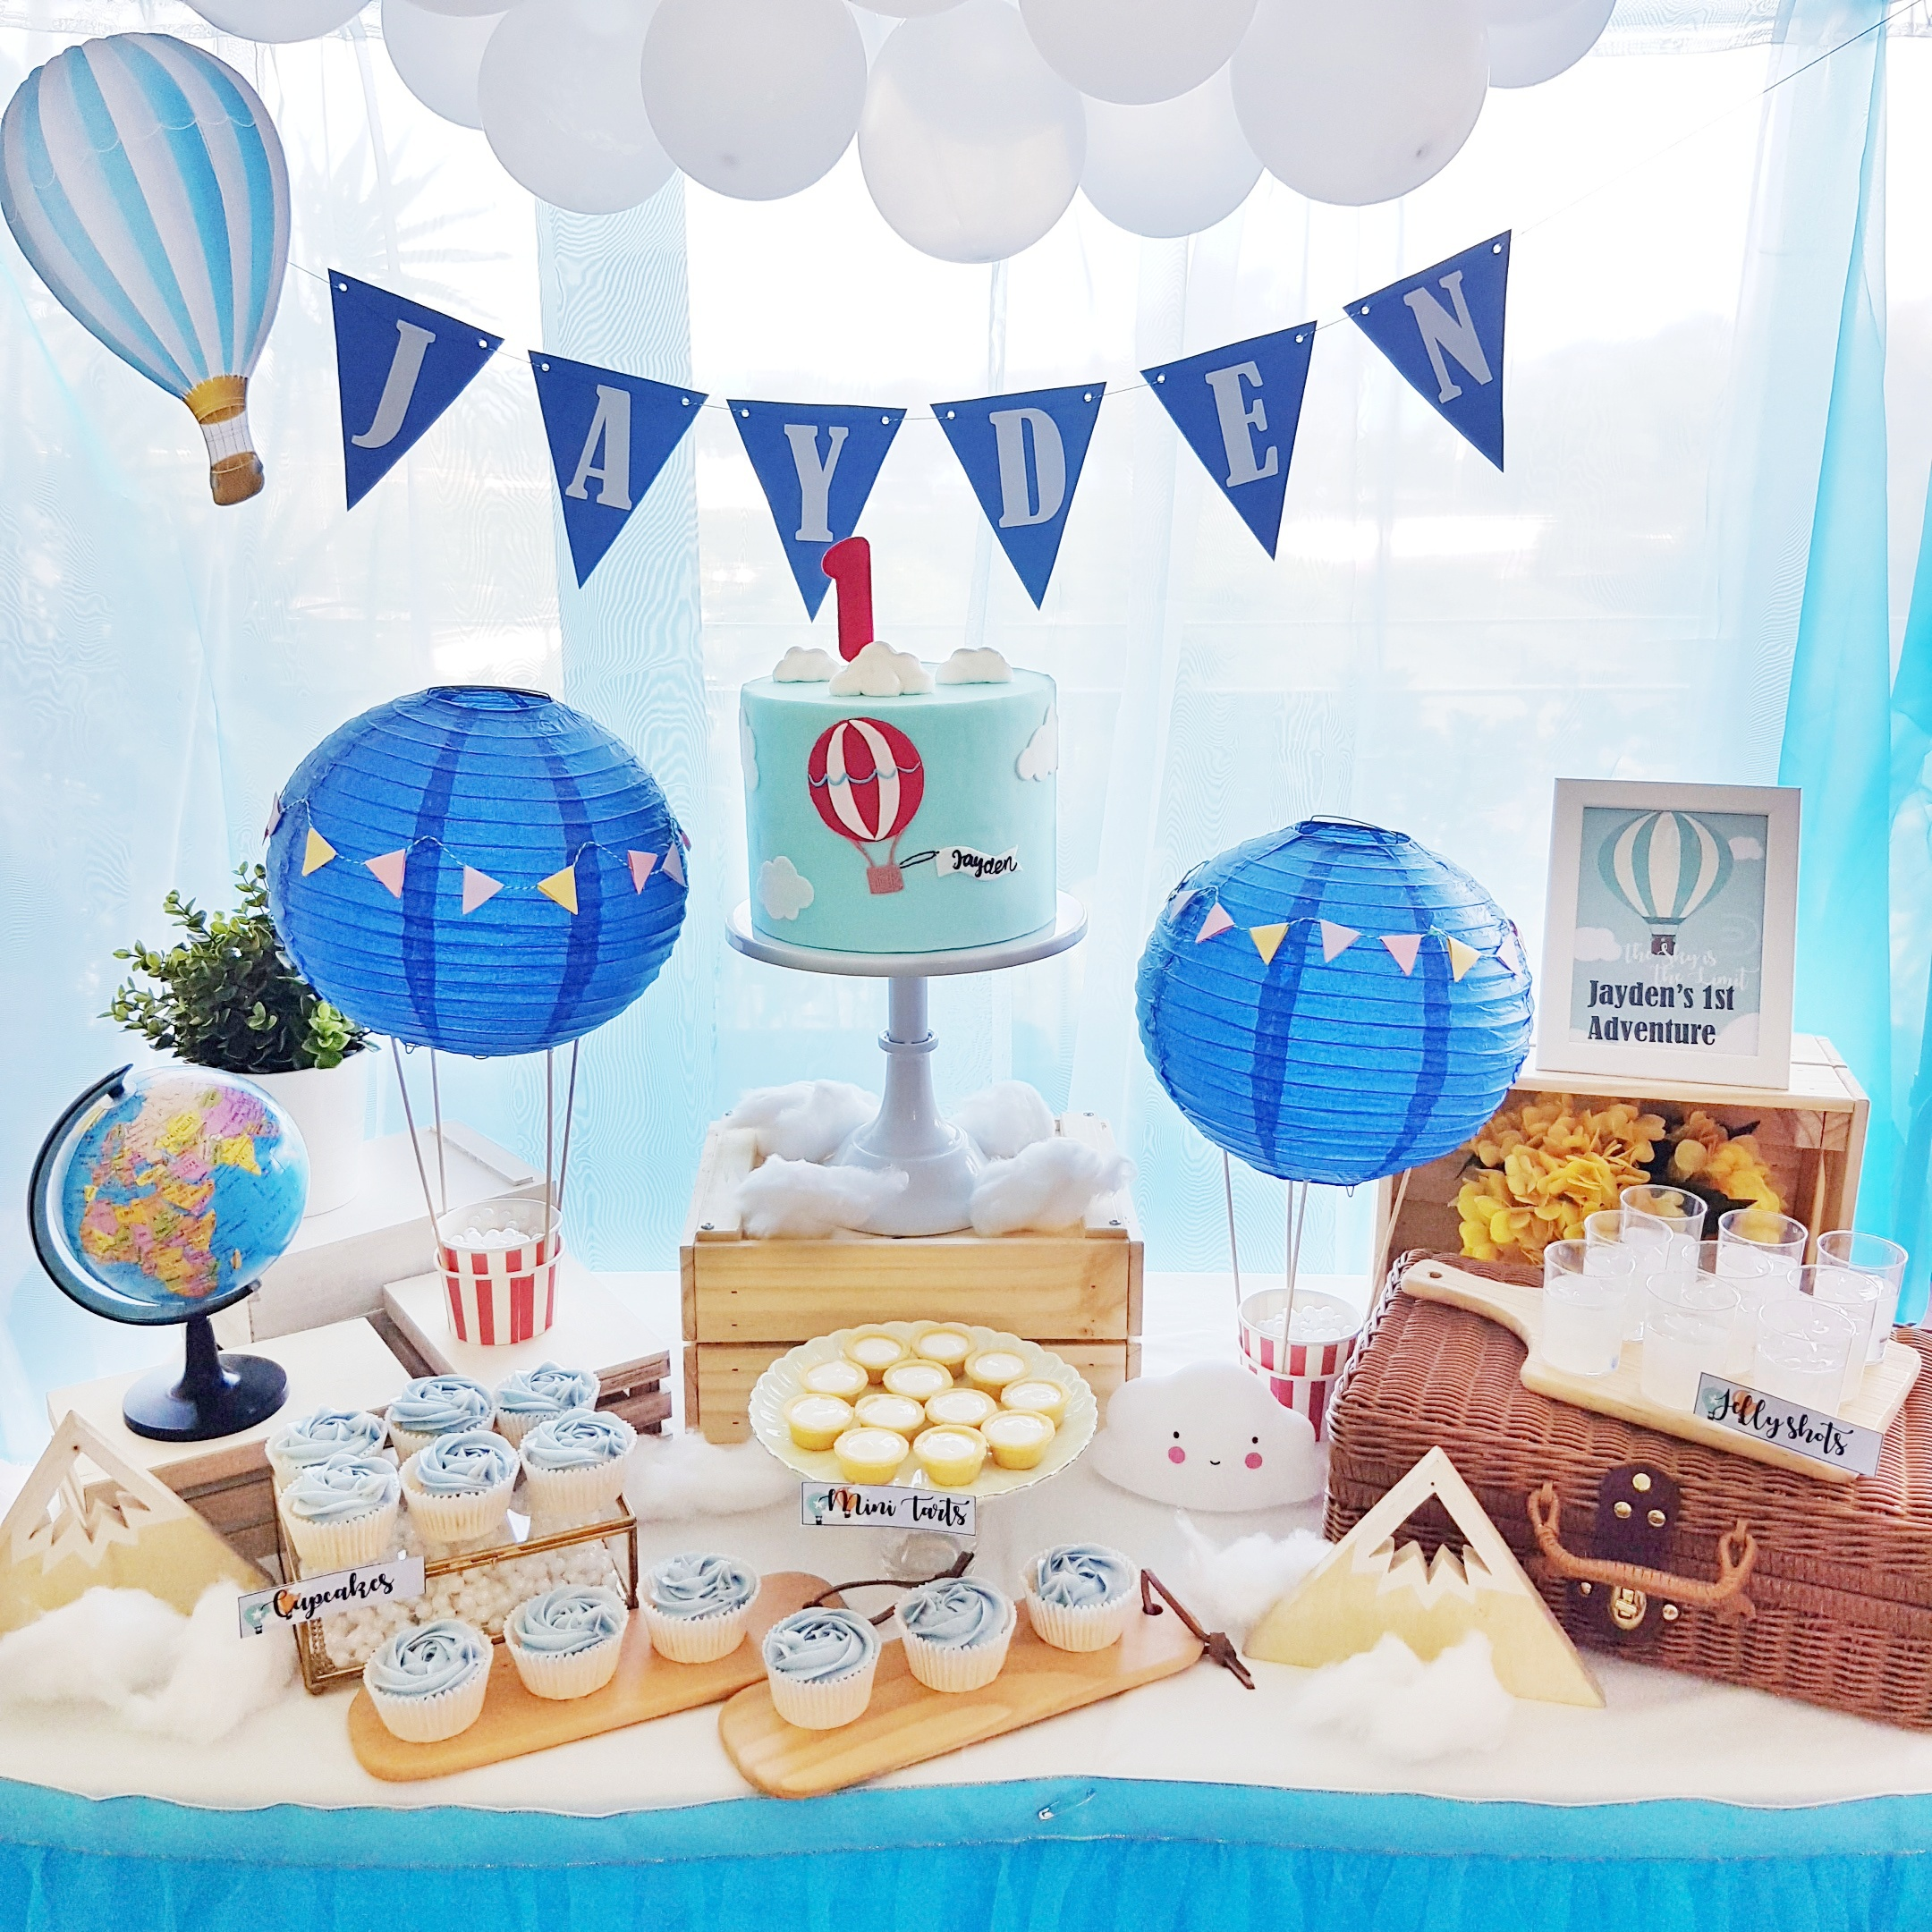 Hot Air Balloon Travel Theme Dessert Table by The Baking Experiment